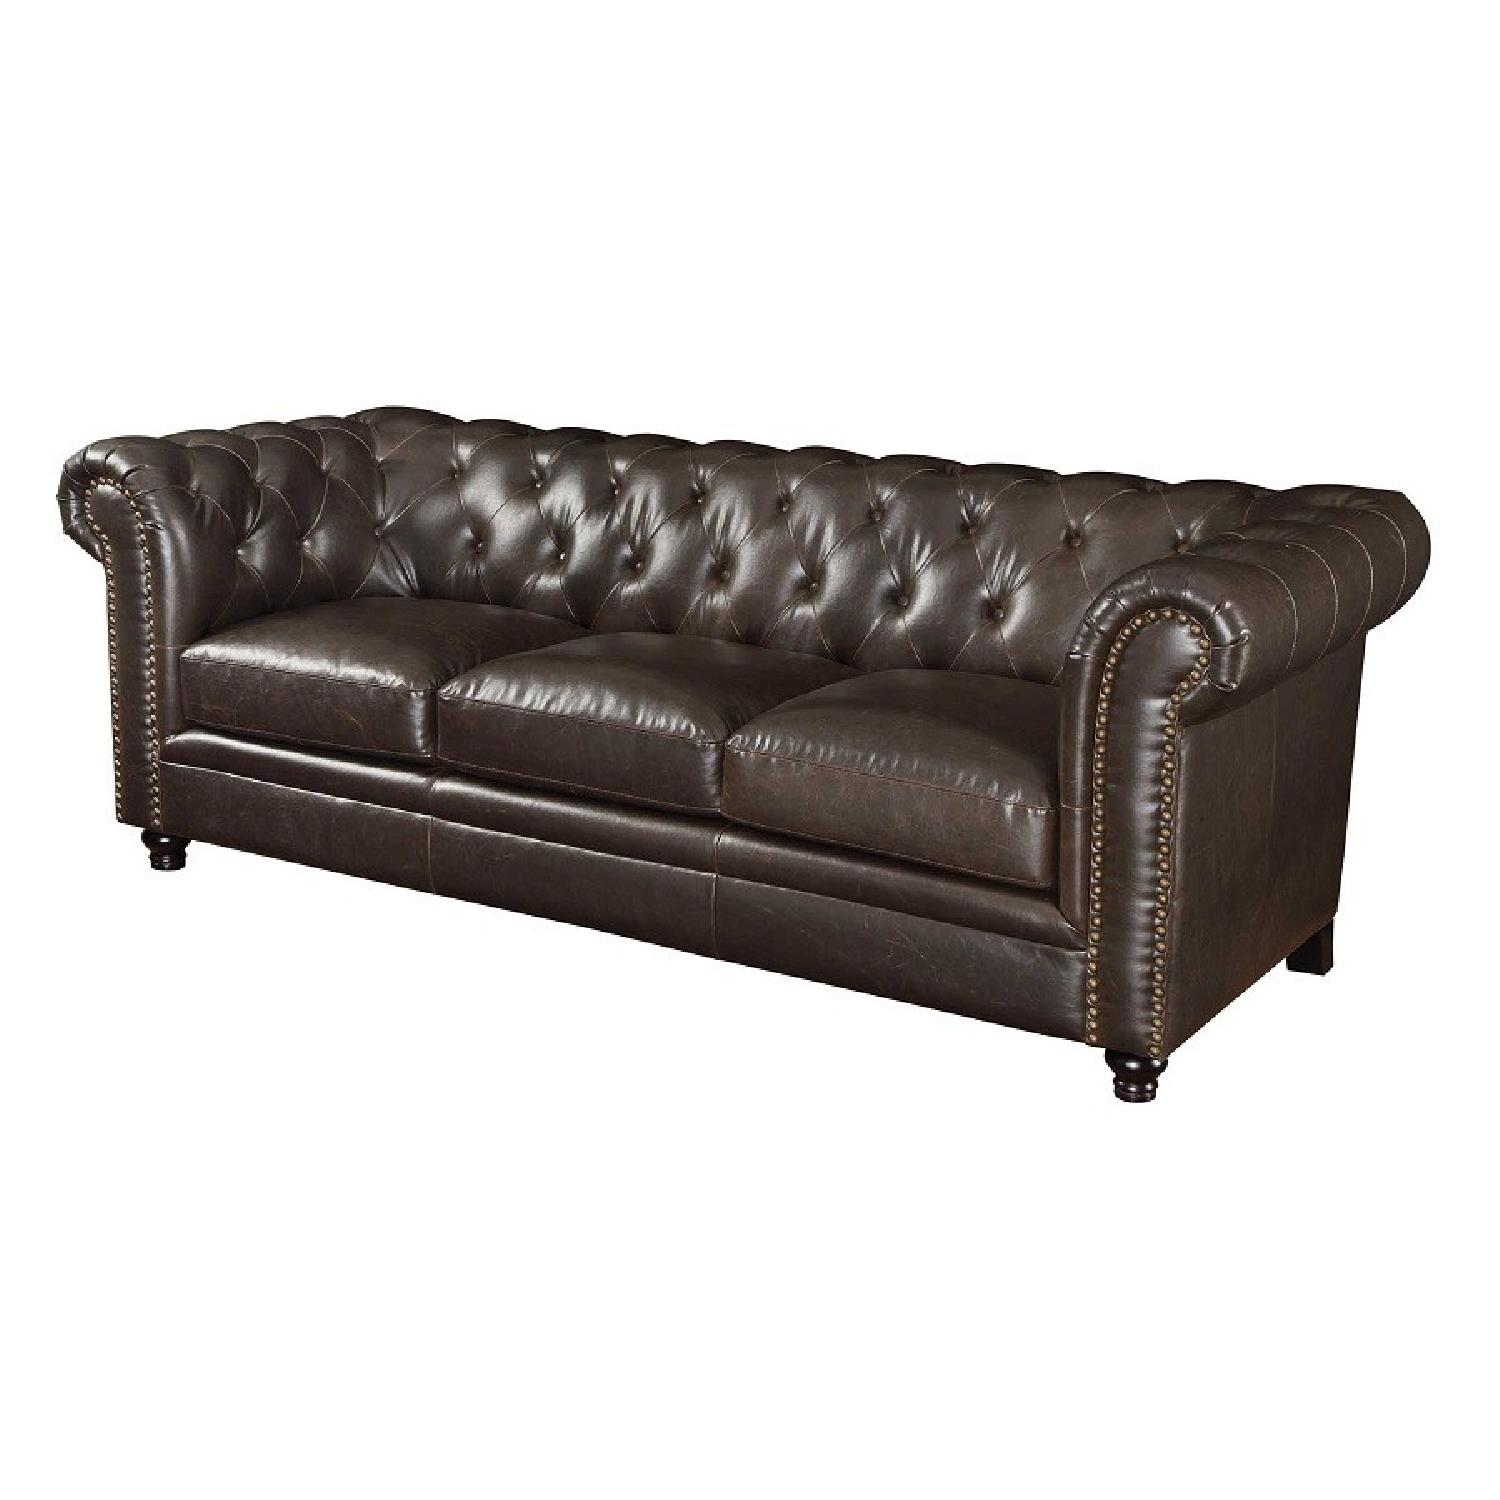 Chesterfield Style Sofa w/ Button Tufted Back & - AptDeco